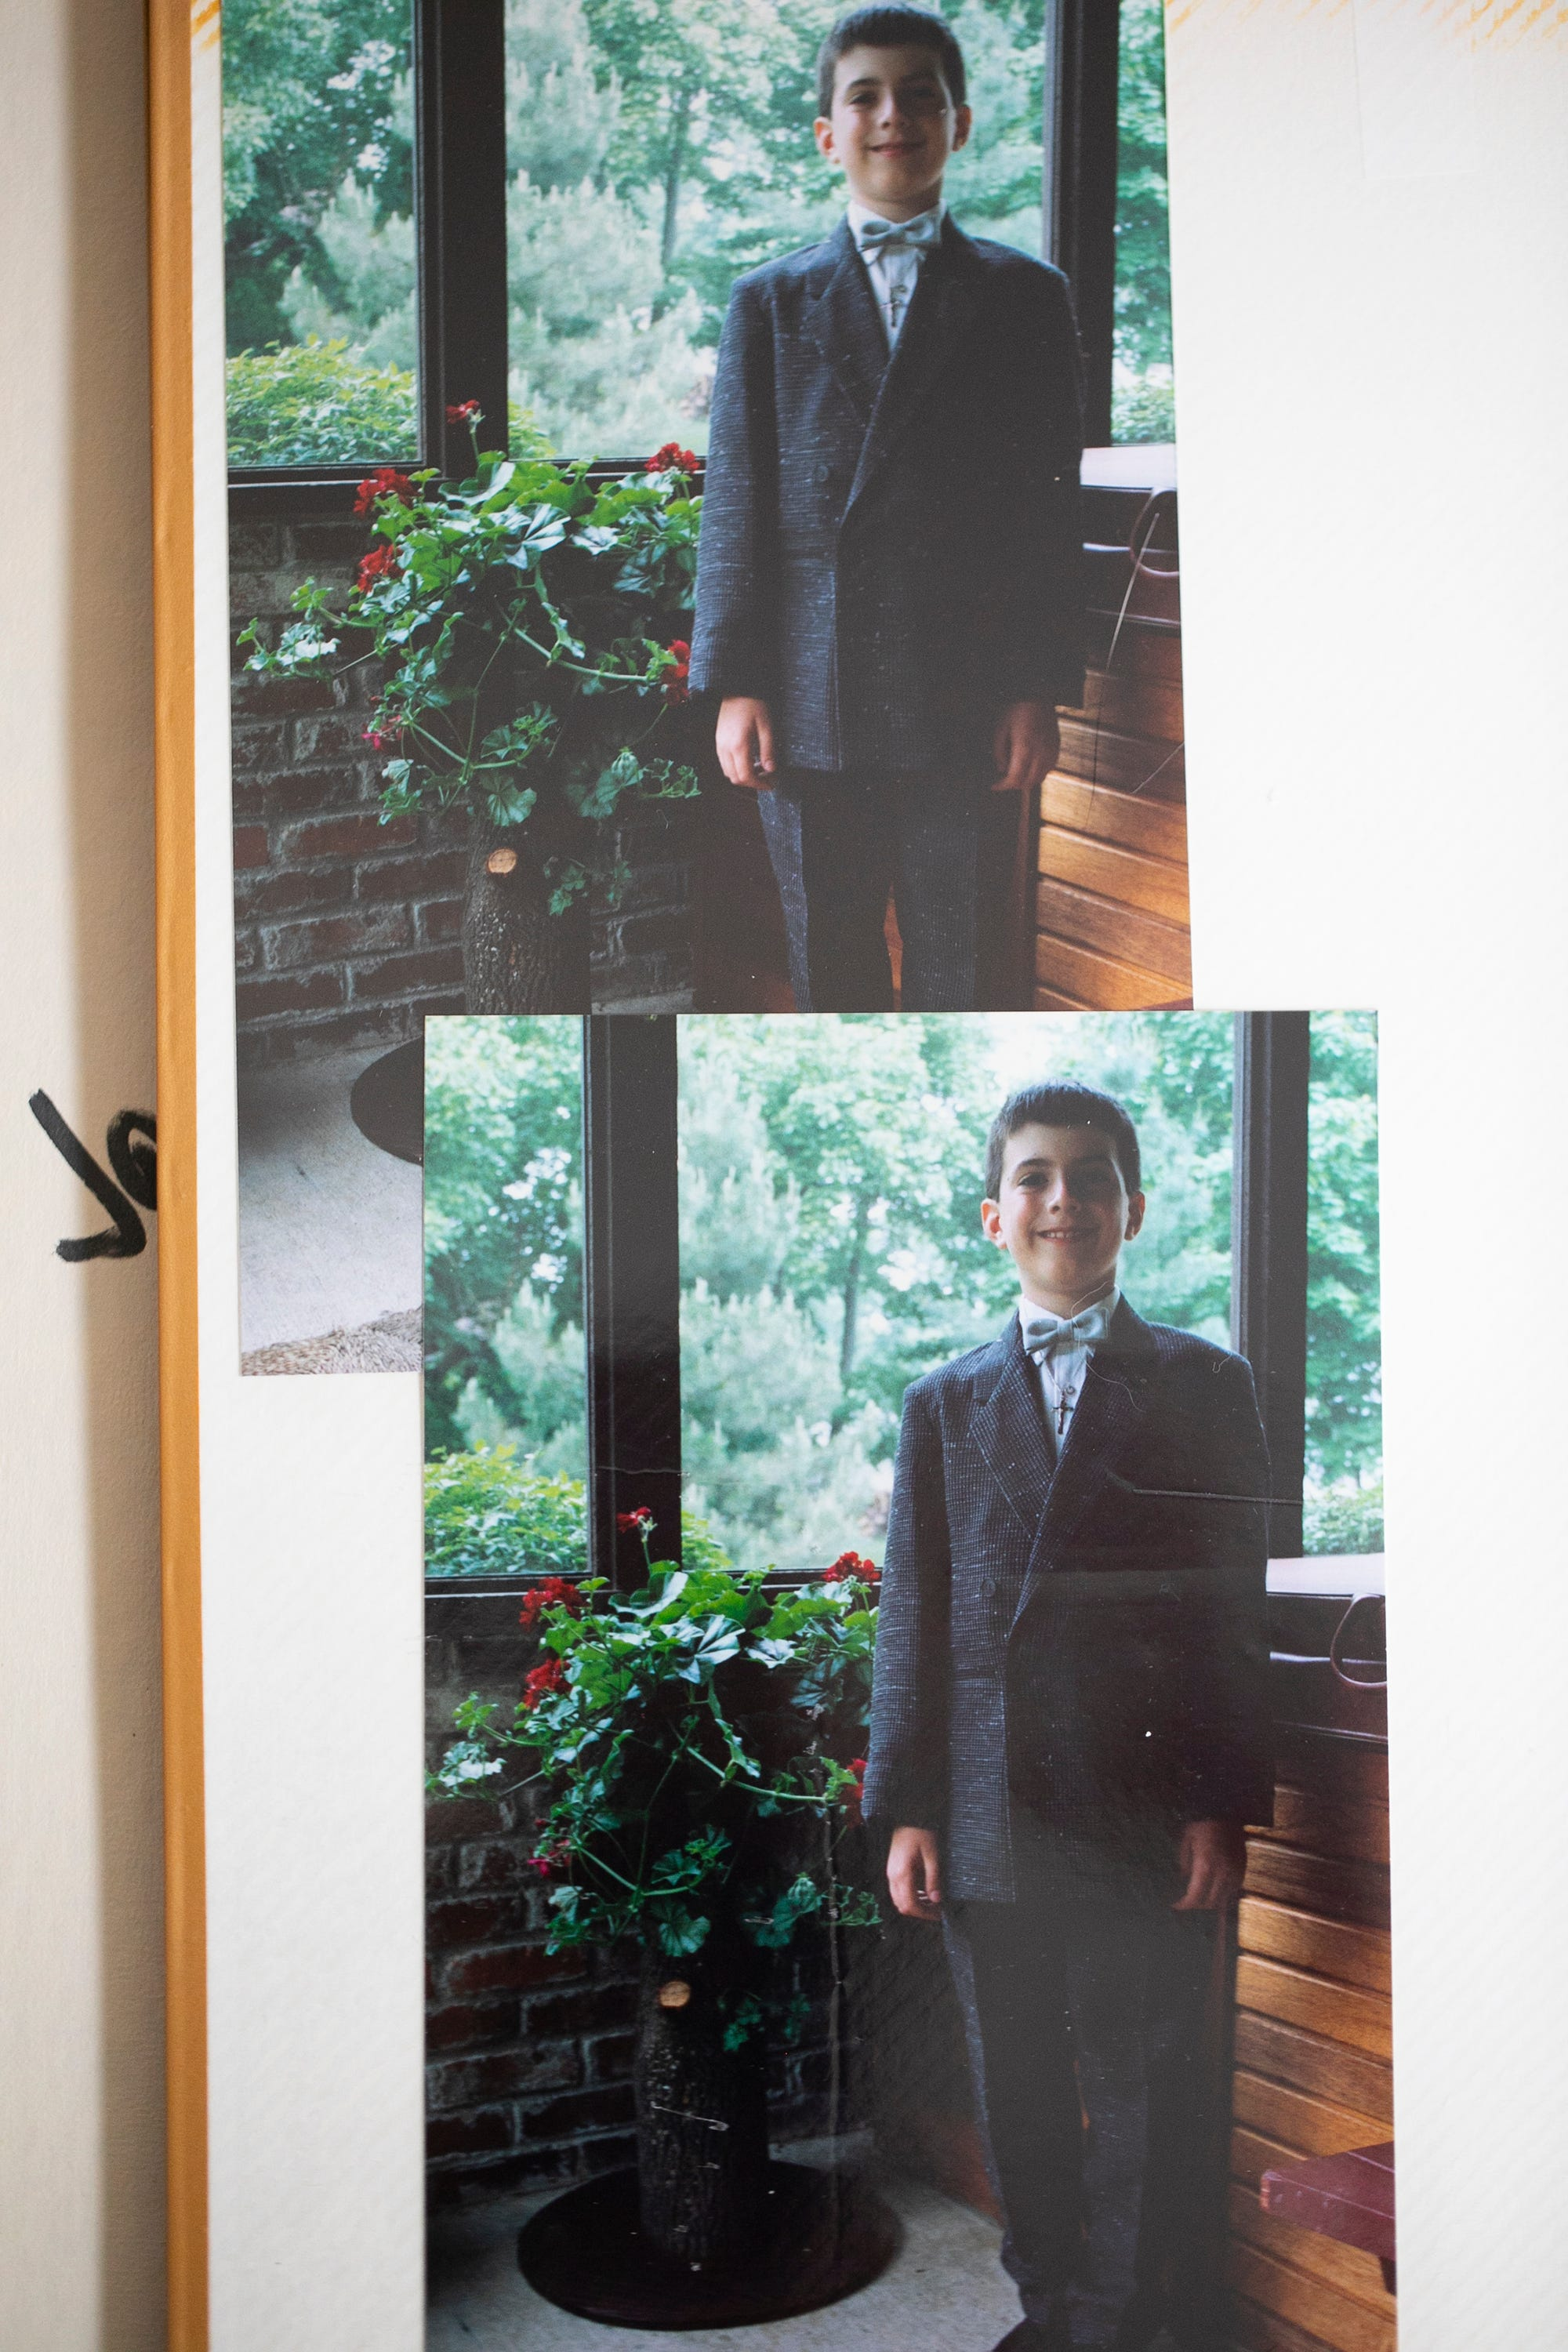 First communion photos of Chris Graham, now 39, who was raped by a priest in Columbus when he was 14-years-old.